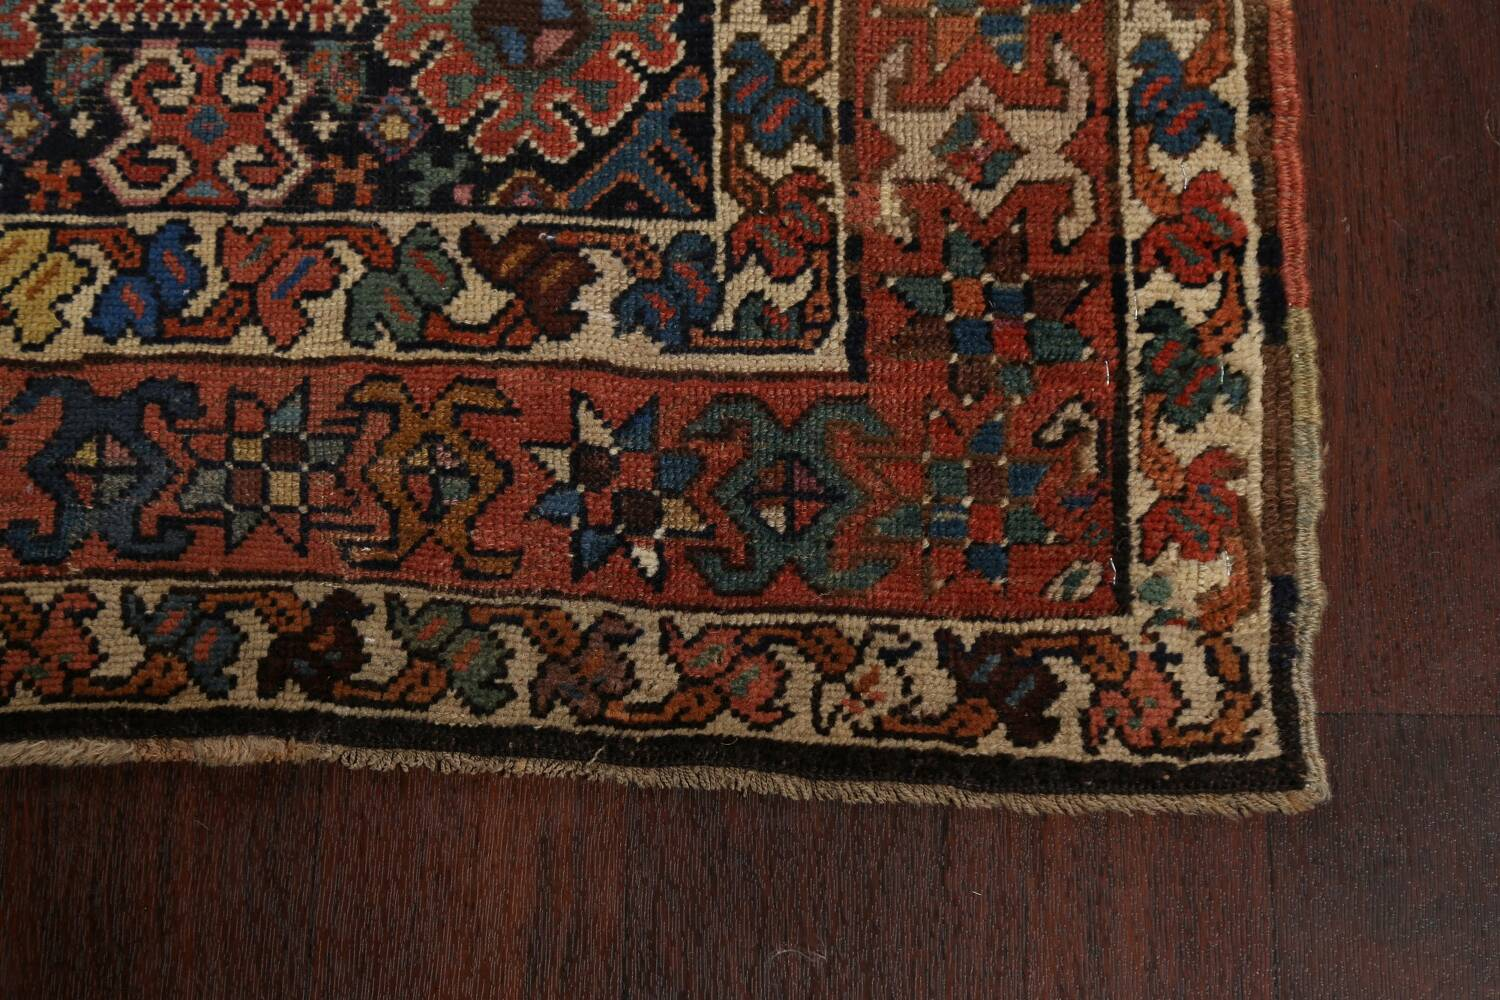 Pre-1900 Antique Vegetable Dye Kazak Oriental Runner Rug 3x11 image 6